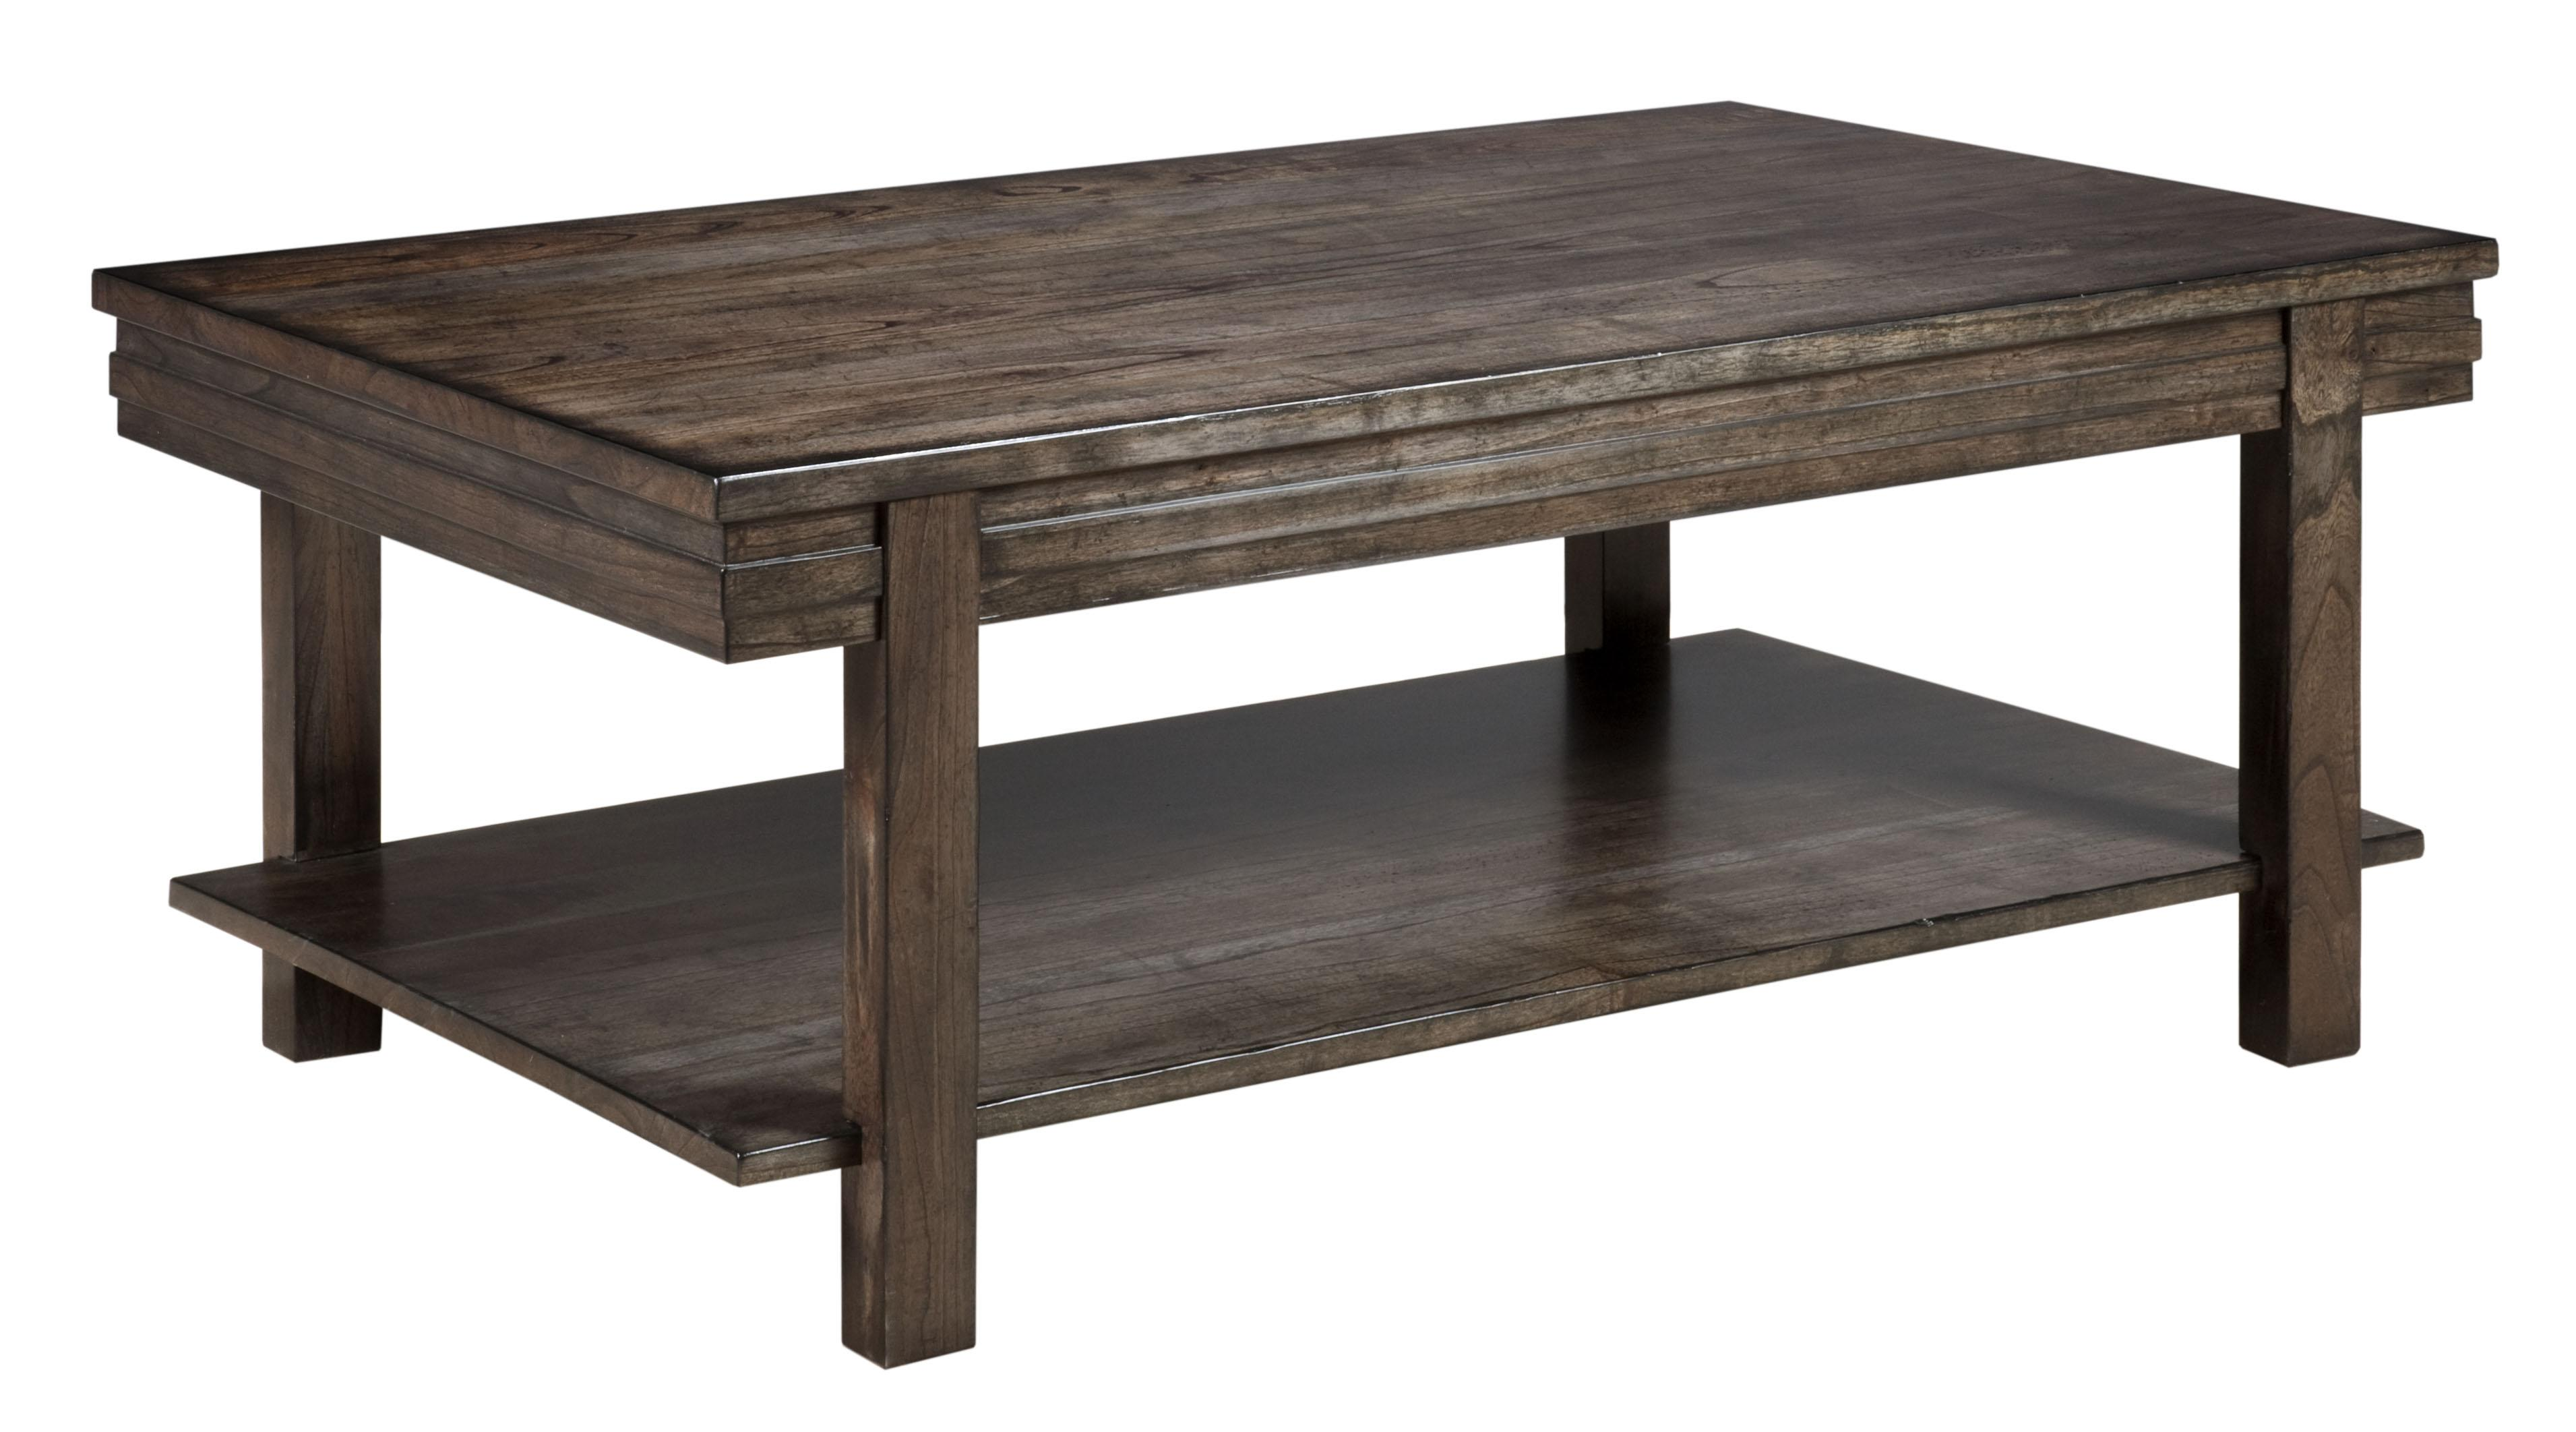 kincaid furniture montreat contemporary cantilever cocktail products color solid wood accent tables table side wicker teak bench room essentials outdoor small bedroom decorating